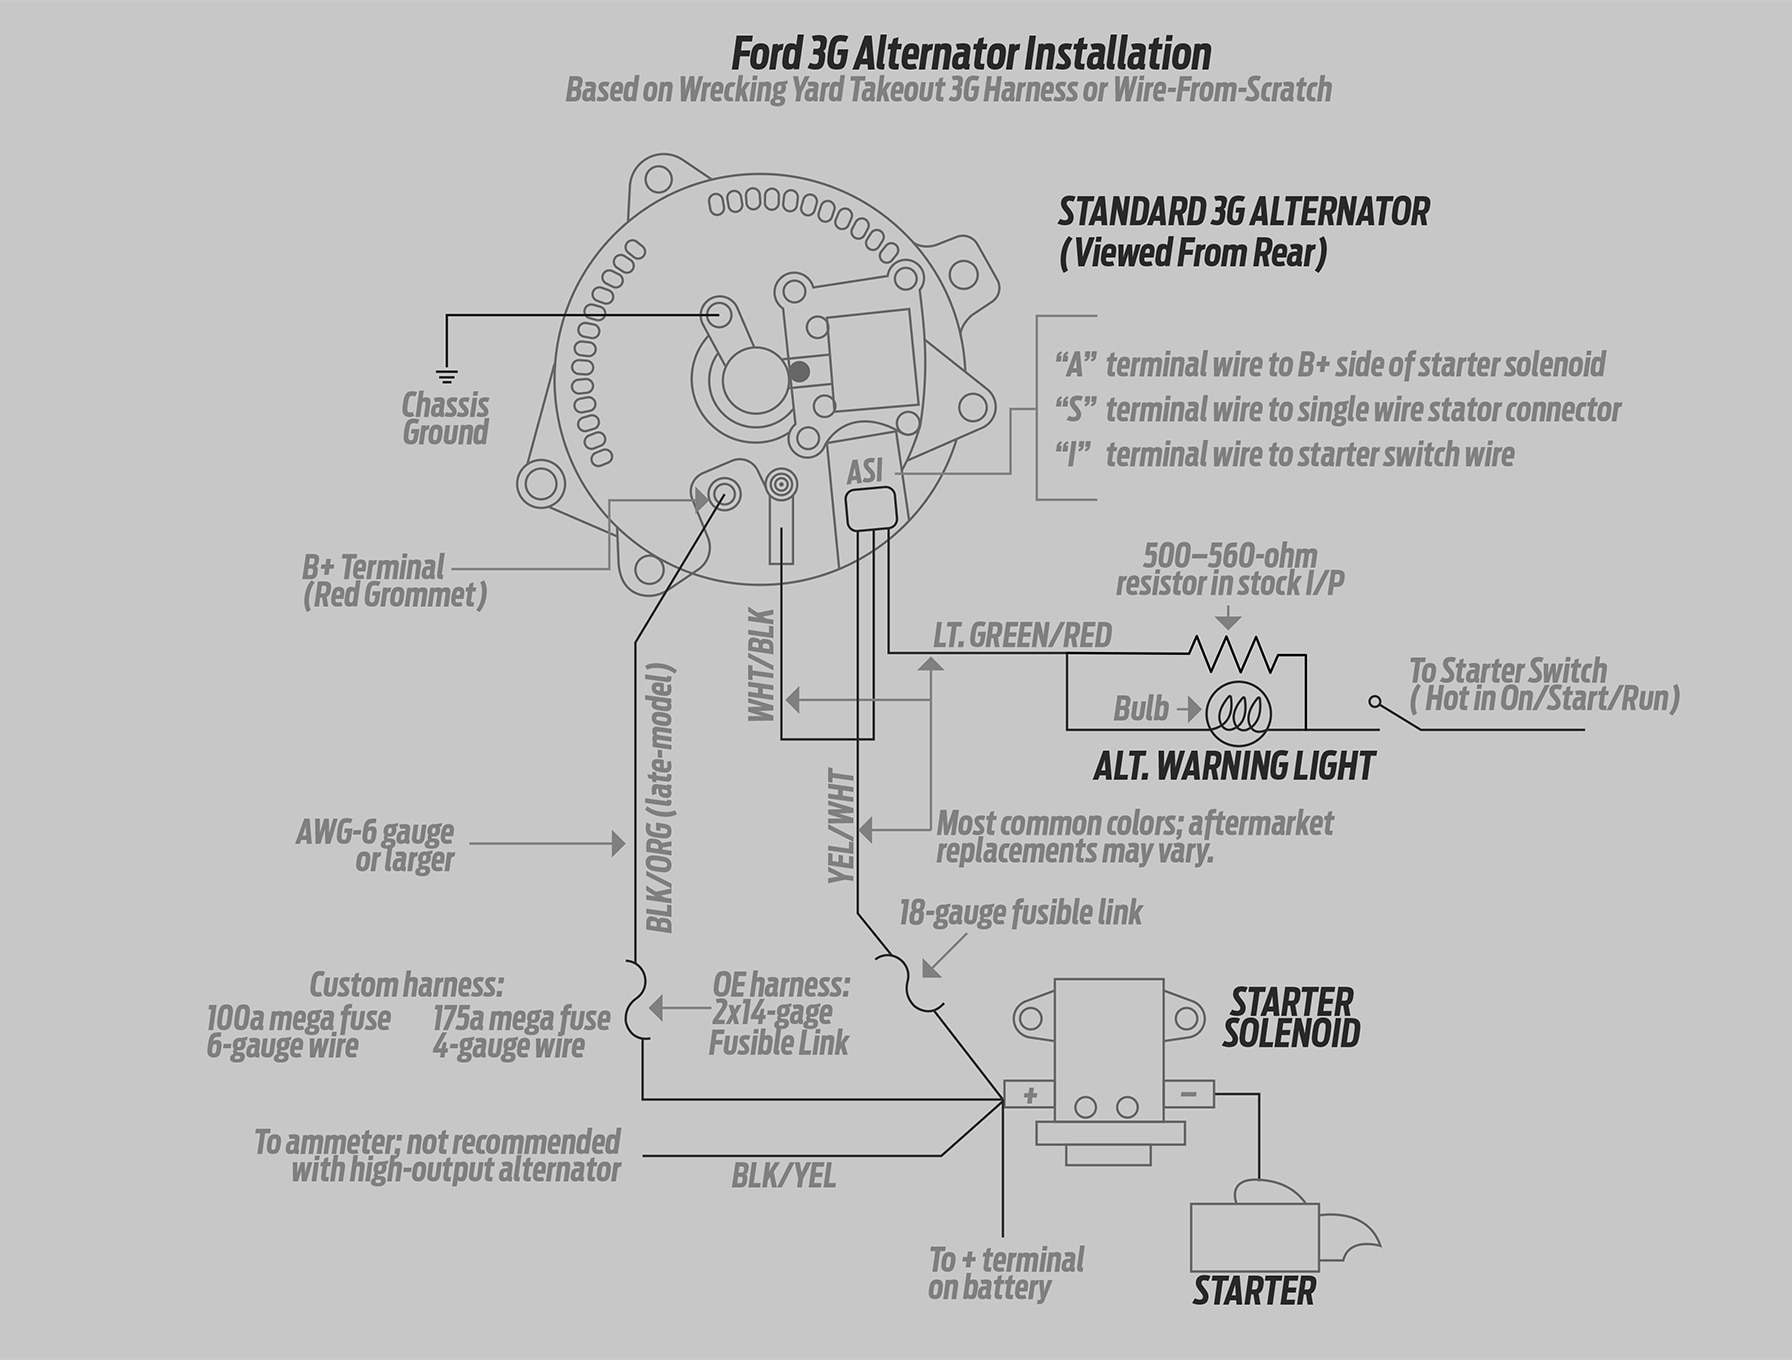 medium resolution of ford 3g alternator wiring wiring diagram experthow to install a high output ford 3g alternator into